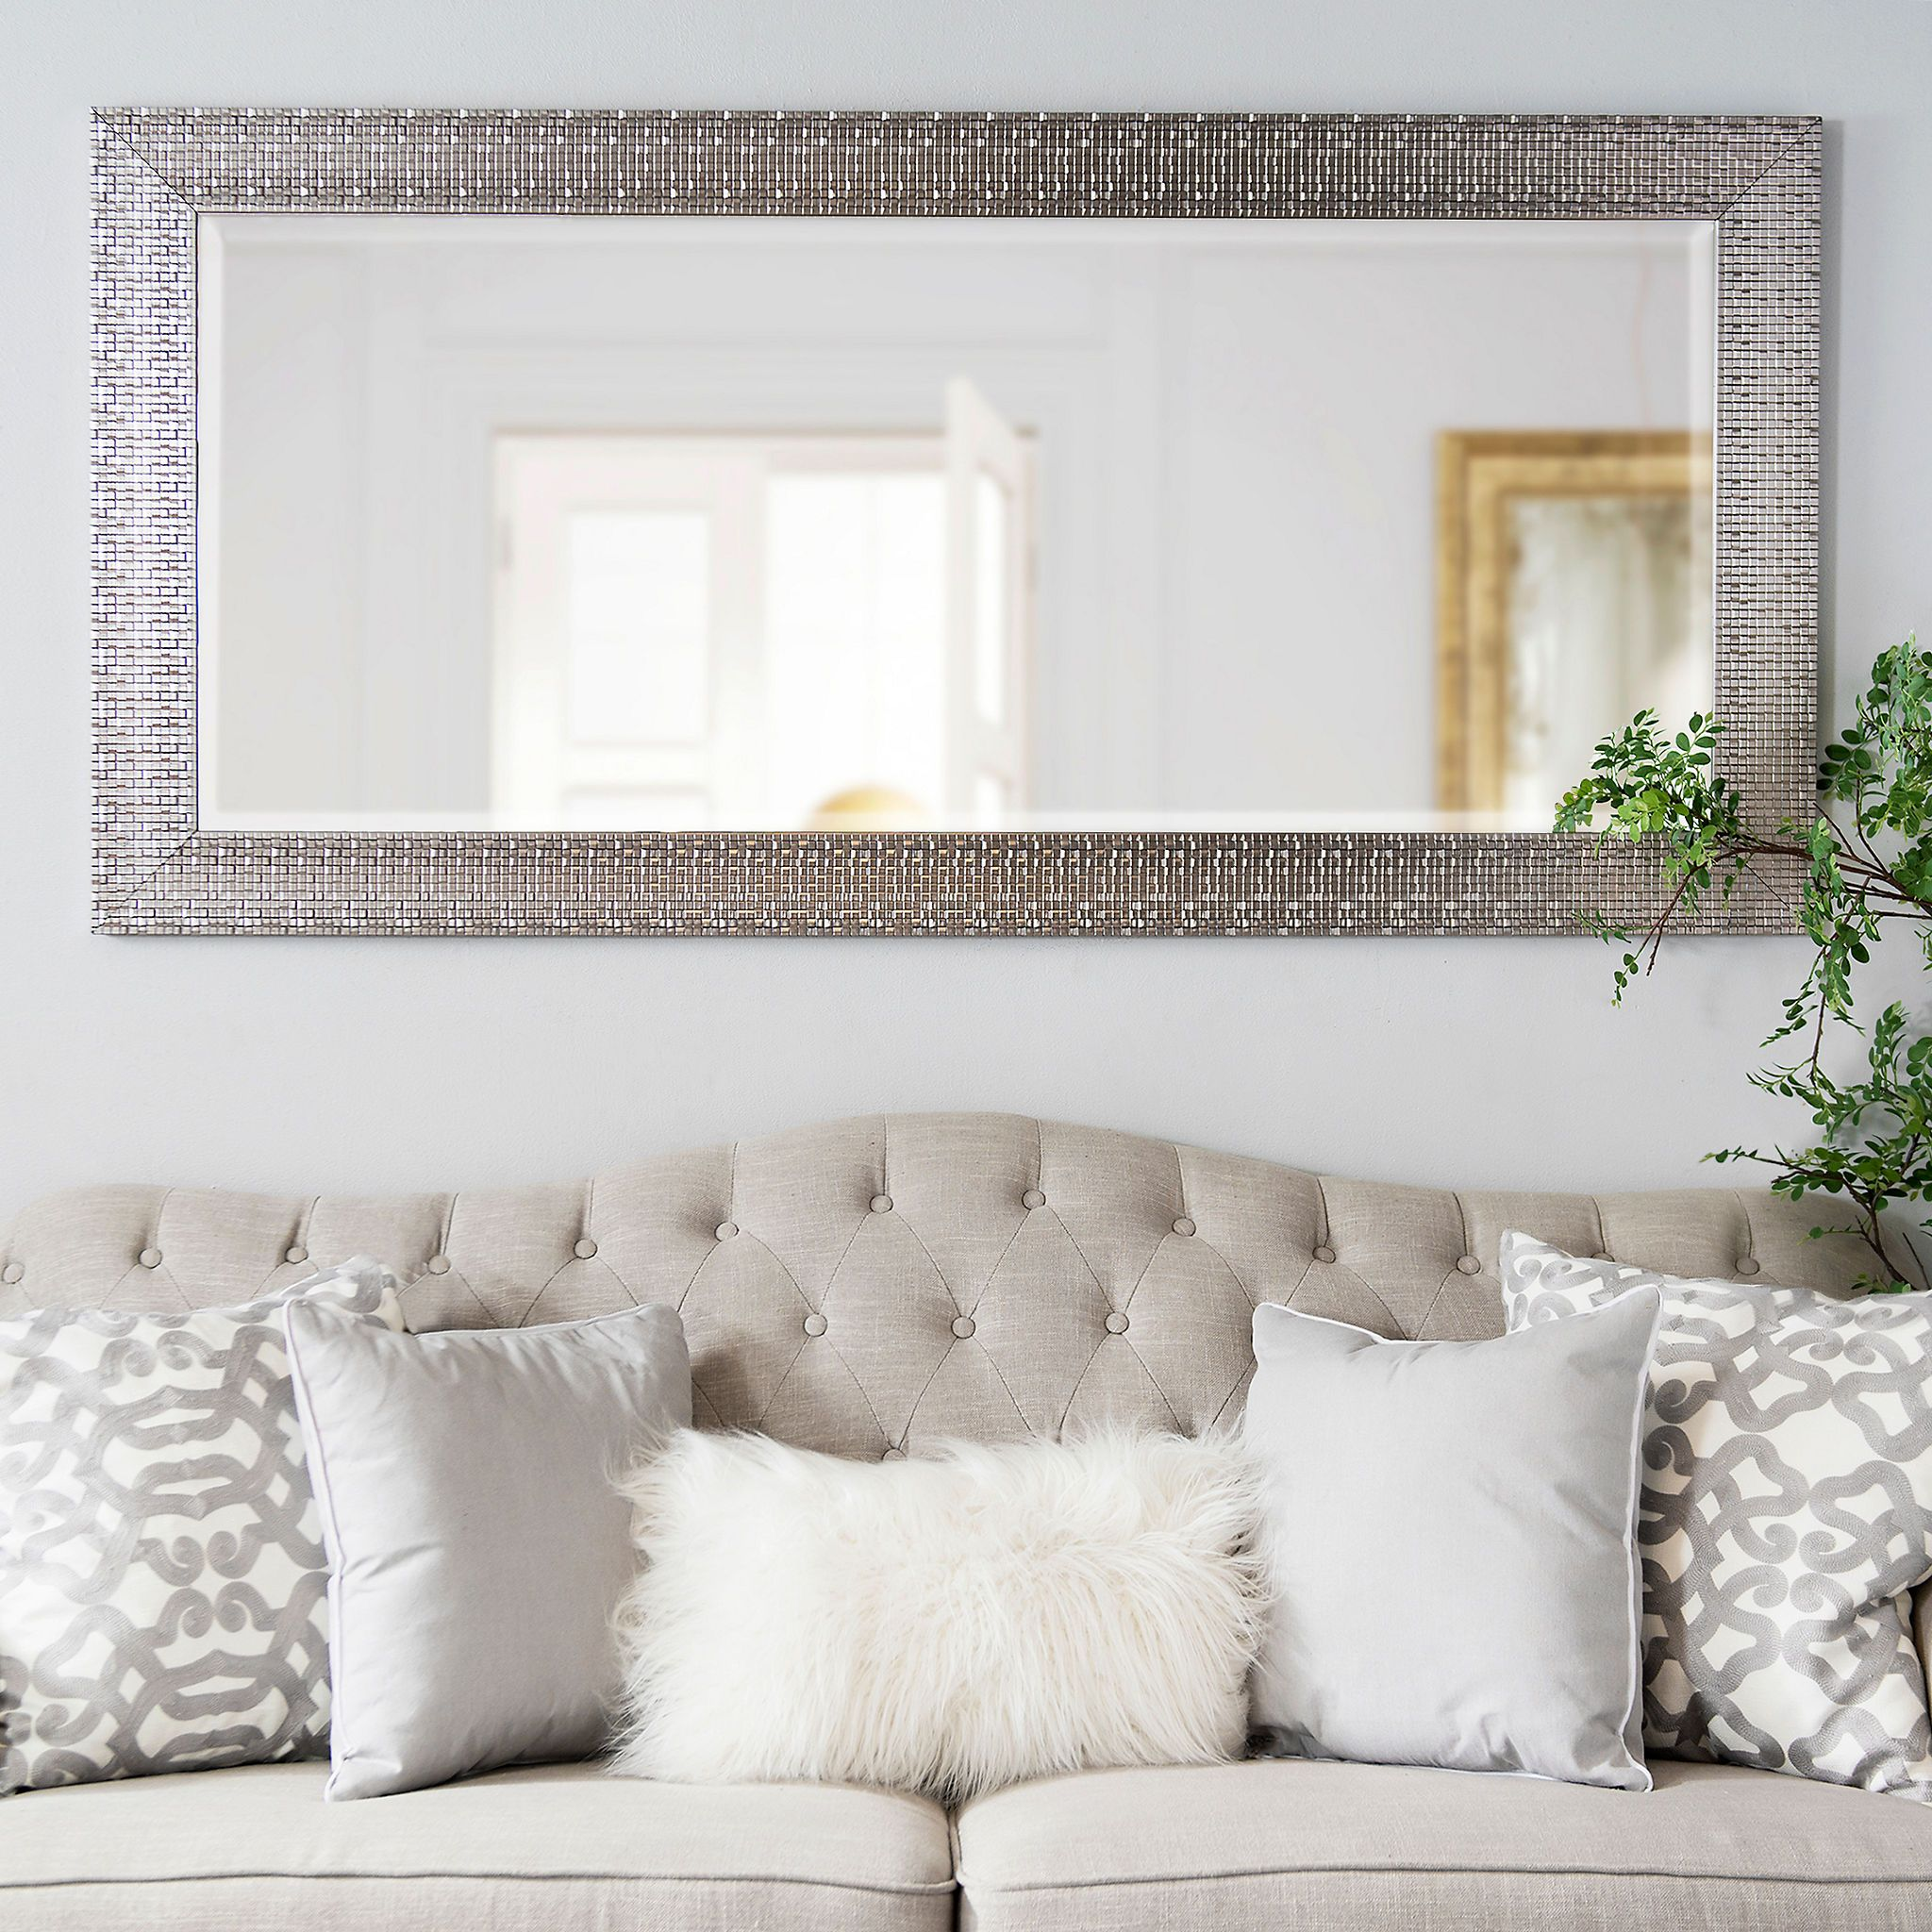 Metallic Silver Block Framed Mirror, 31.5x65.5 in | Pinterest